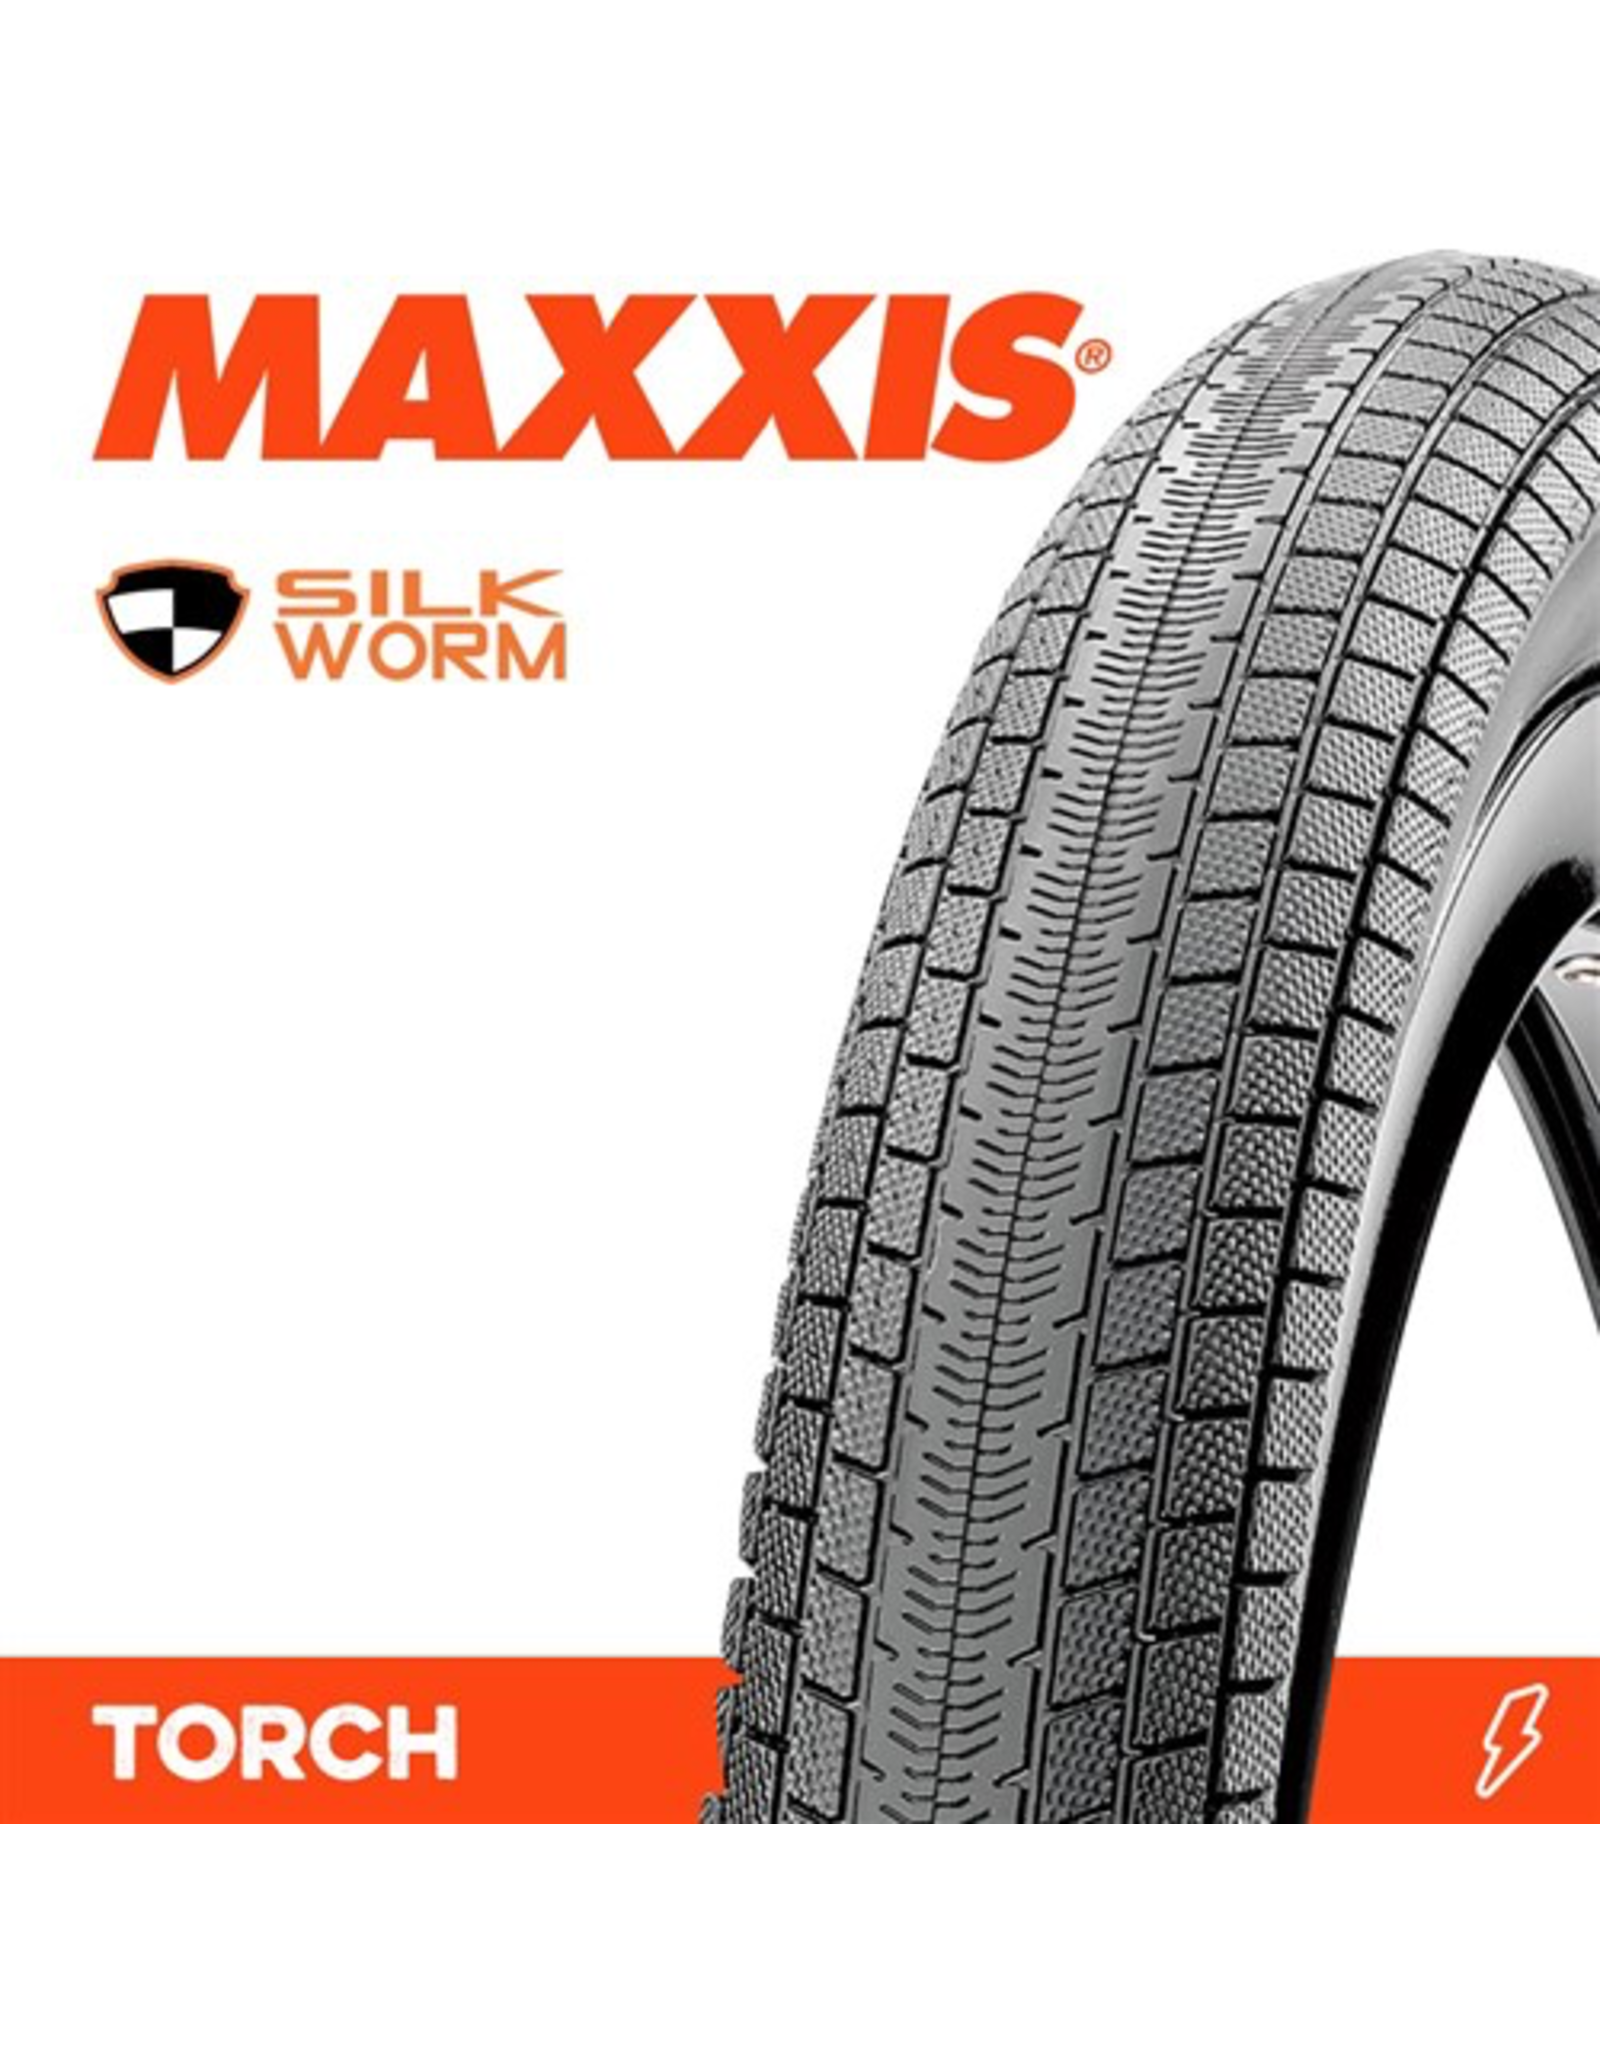 """MAXXIS MAXXIS TORCH 20 X 1-3/8"""" SILKWORM WIRE 60TPI TYRE"""